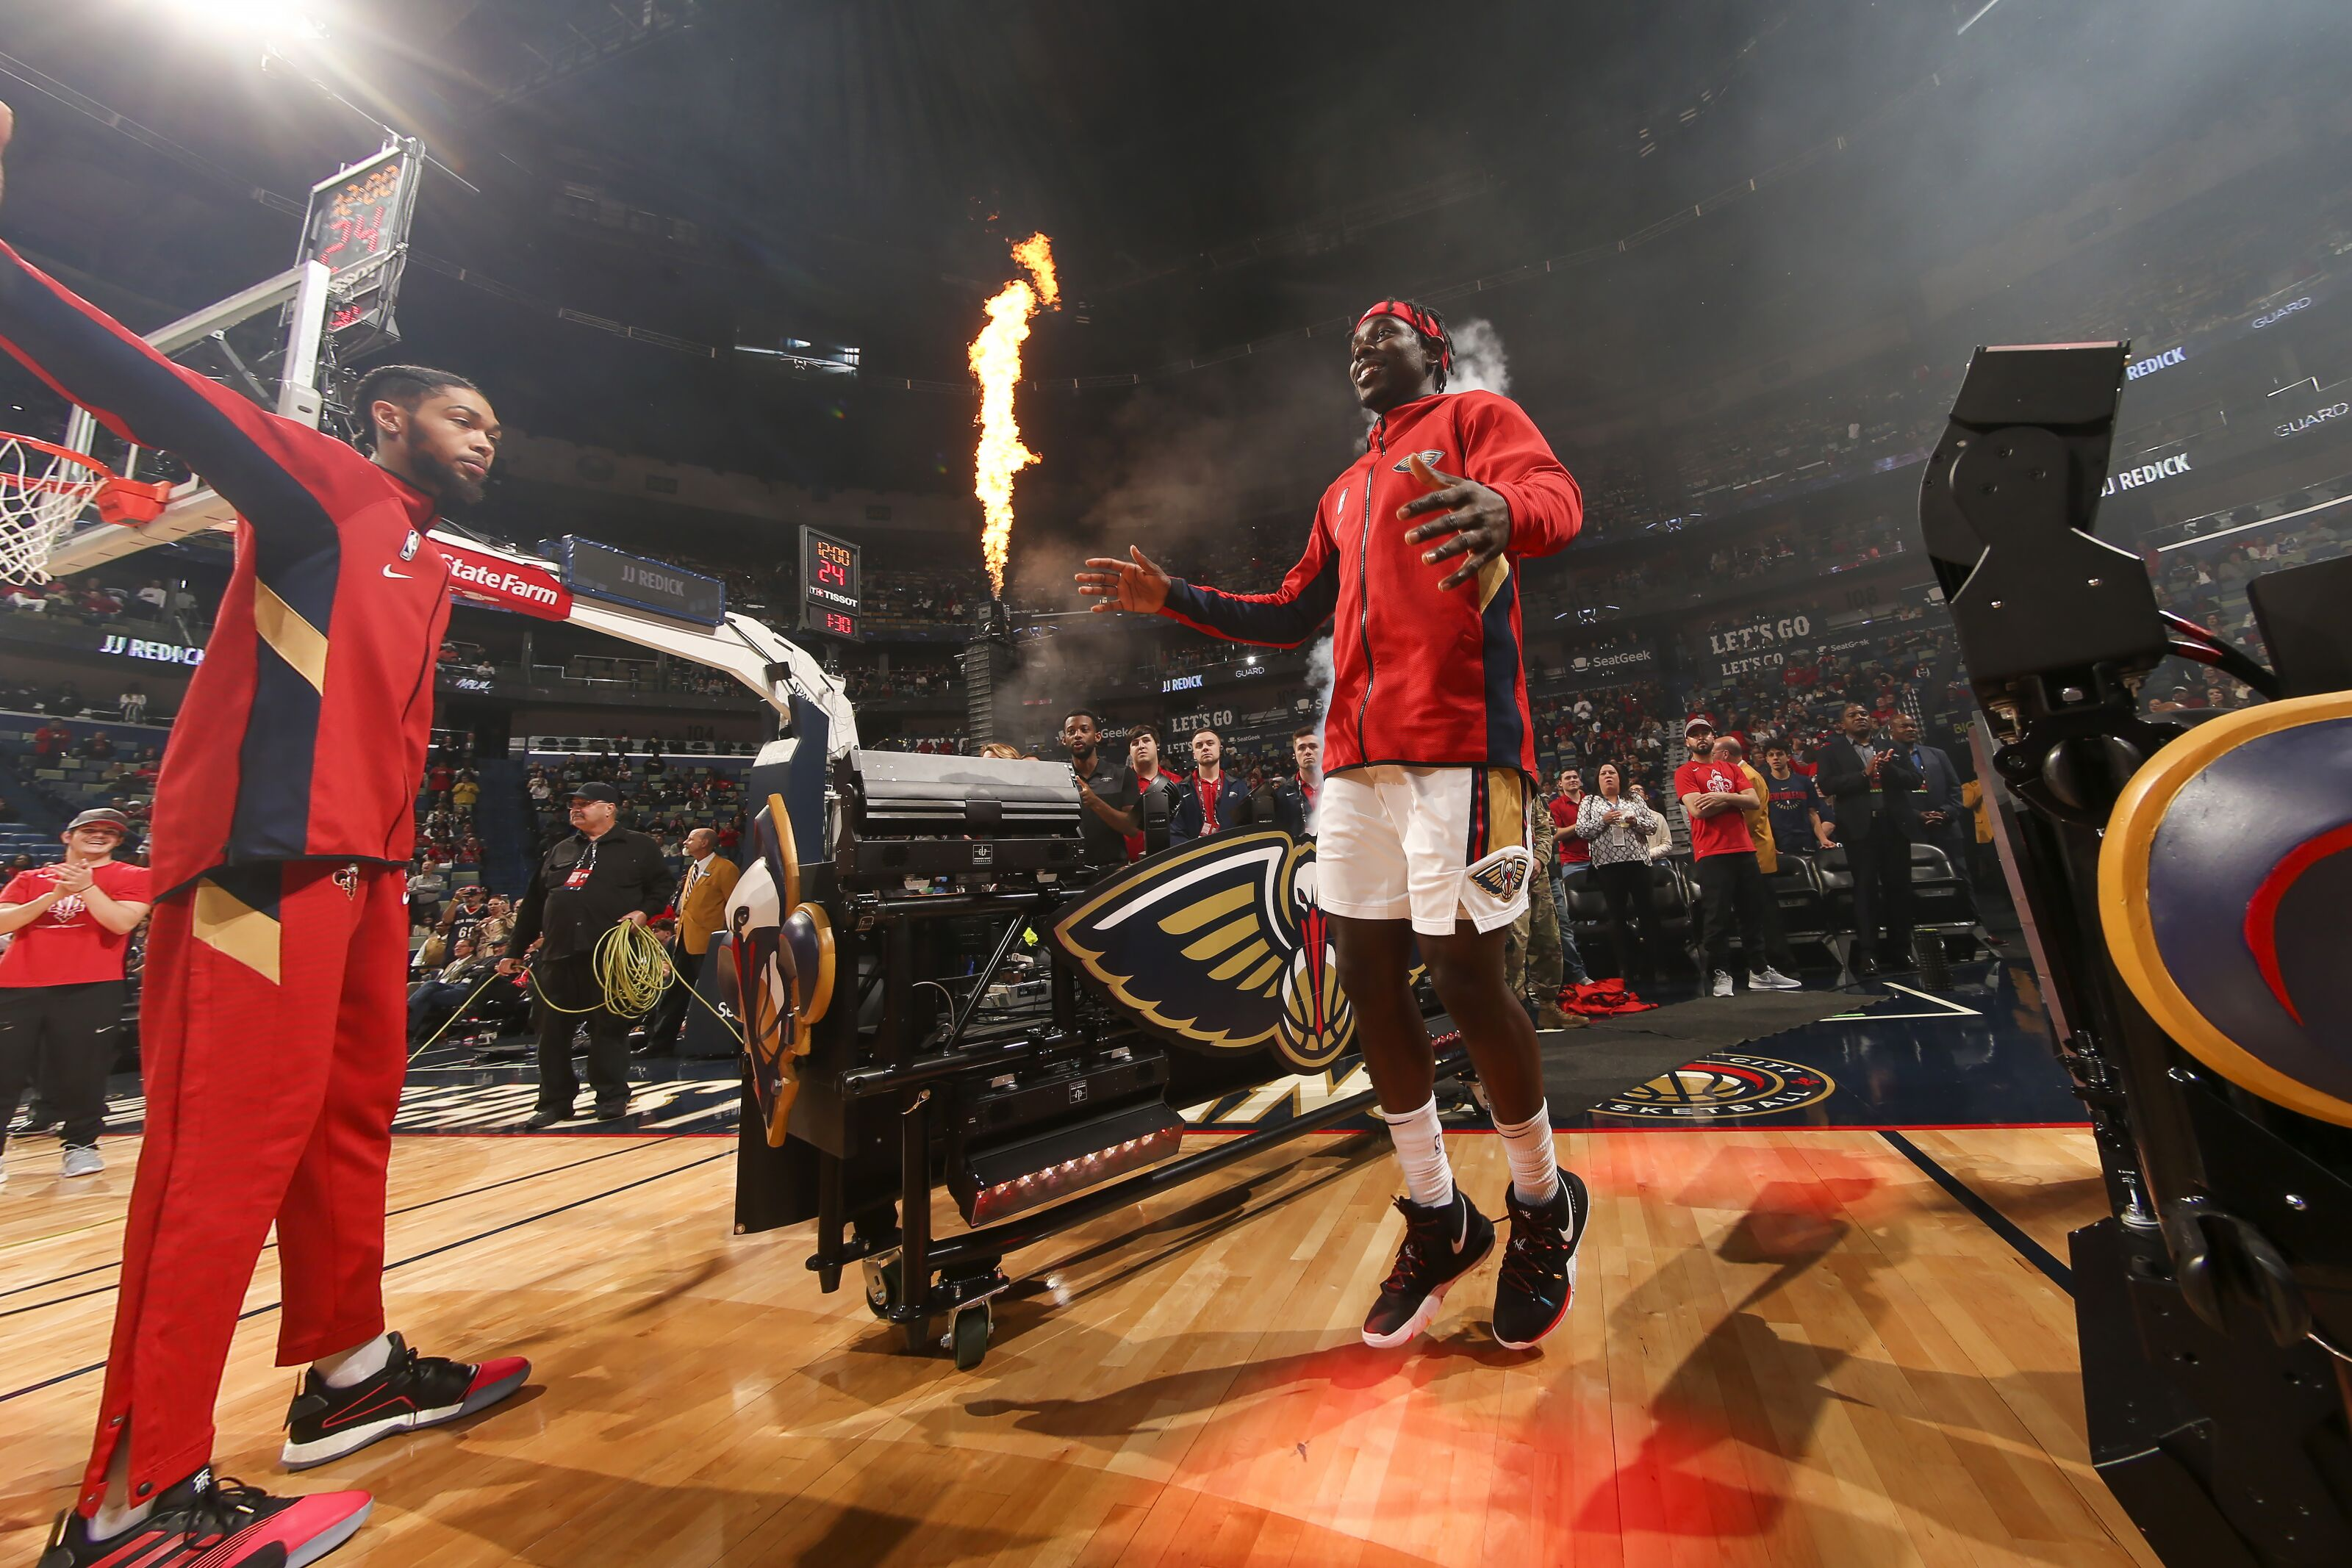 New Orleans Pelicans host Trail Blazers on night of Carmelo's debut